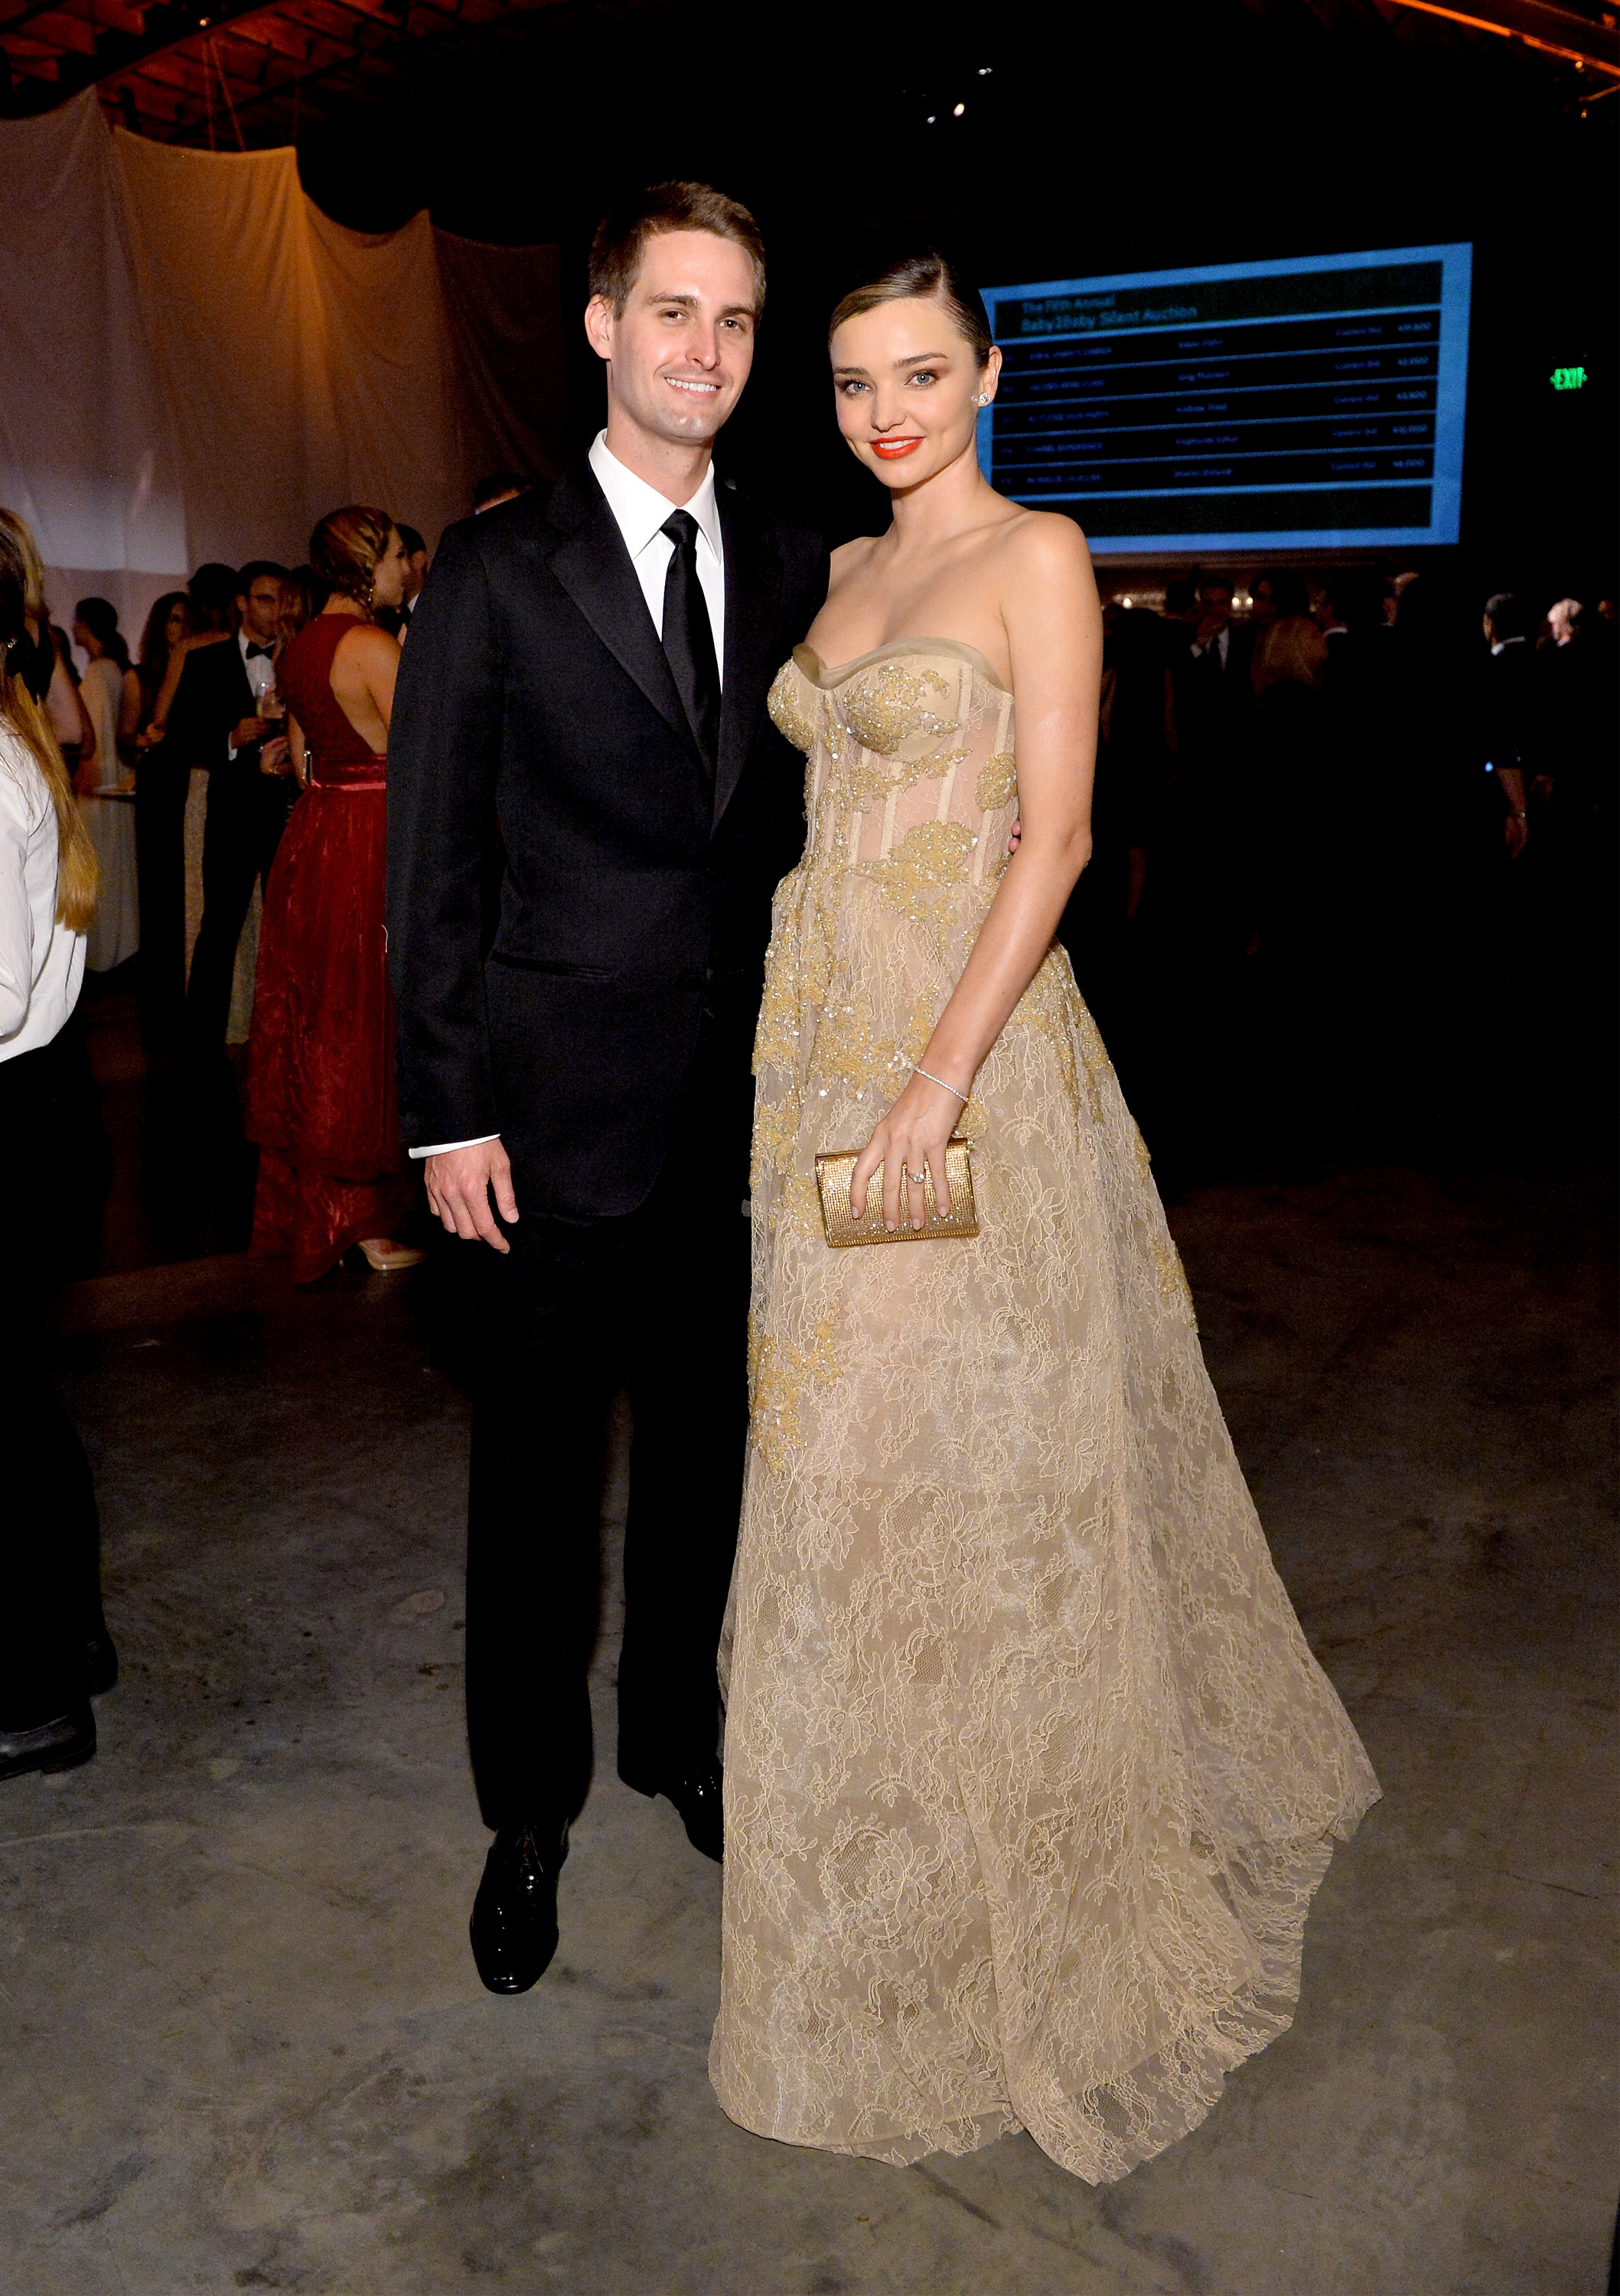 In her strapless Reem Acra gown with billionaire fiancée Evan Spiegel by her side, Miranda Kerr has given her strongest audition yet for what she will be wearing down the aisle.<br /> The pair attended the Baby2Baby gala on the weekend but the main event, Miranda's eagerly-anticipated second time as a bride, has designers eager to dress the supermodel.<br /> While Miranda, 33, has only indicated next year as the time of the main event, don't be surprised if her wedding to the 26-year-old Snapchat founder sneaks up on you. In 2010 Miranda secretly married Hollywood actor Orlando Bloom, catching the media off guard.<br /> There were no pictures of Miranda's wedding to Orlando but we expect the runway regular, founder of Kora skincare and Royal Albert ambassador to go bigger than Ben Hur (meets Balenciaga) this time.<br /> We've scoured the racks to find something suitable for a multi-million-dollar extravaganza. Cue the confetti.